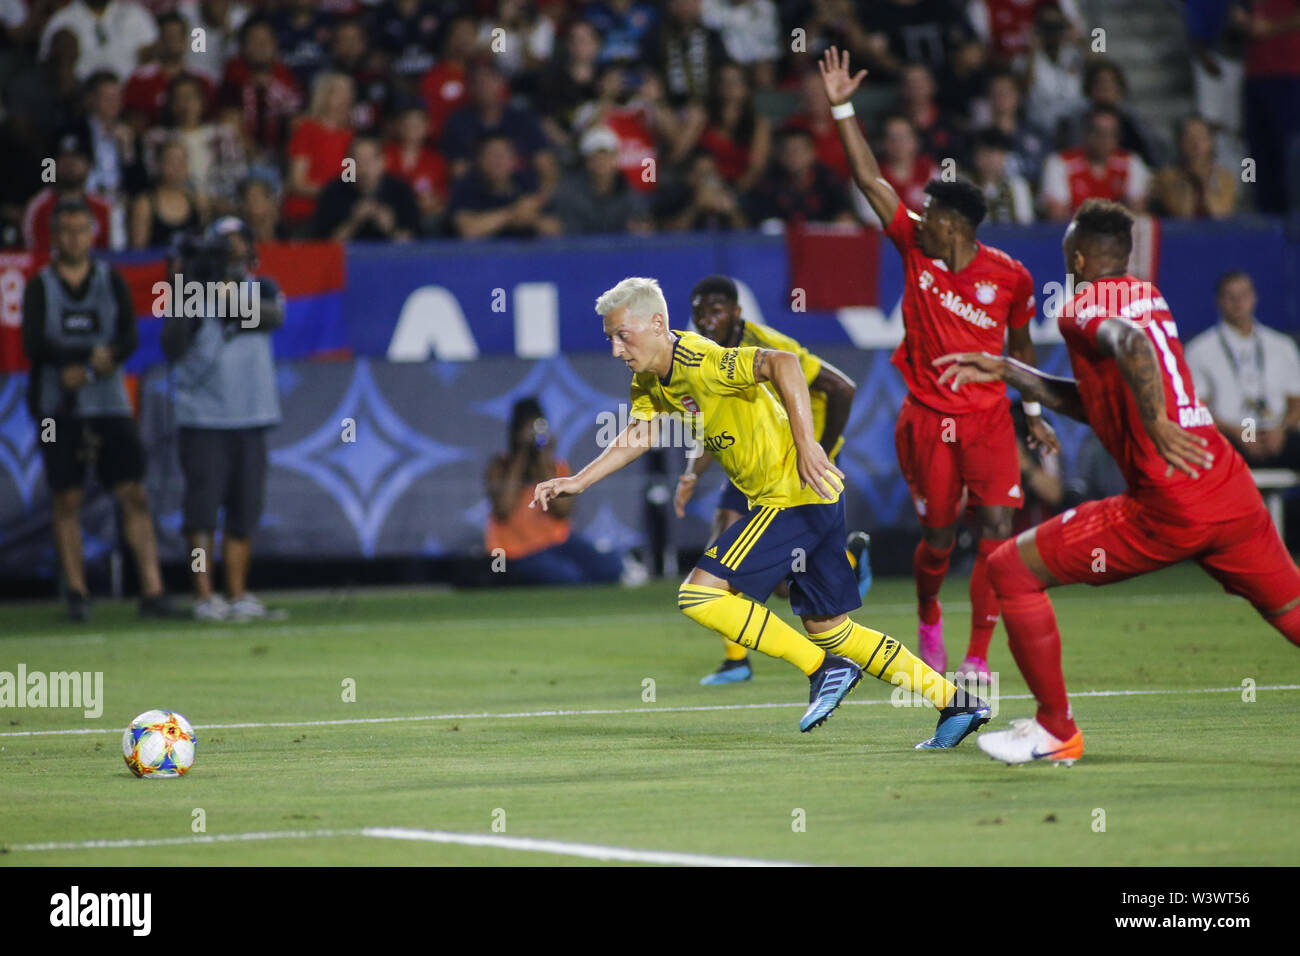 Los Angeles, California, USA. 17th July, 2019. Arsenal midfielder Mesut Ozil (10) drives the ball during the 2019 International Champions Cup (ICC) match between Arsenal and Bayern Munich in Carson, California, July 17, 2019. Arsenal won 2-1. Credit: Ringo Chiu/ZUMA Wire/Alamy Live News - Stock Image